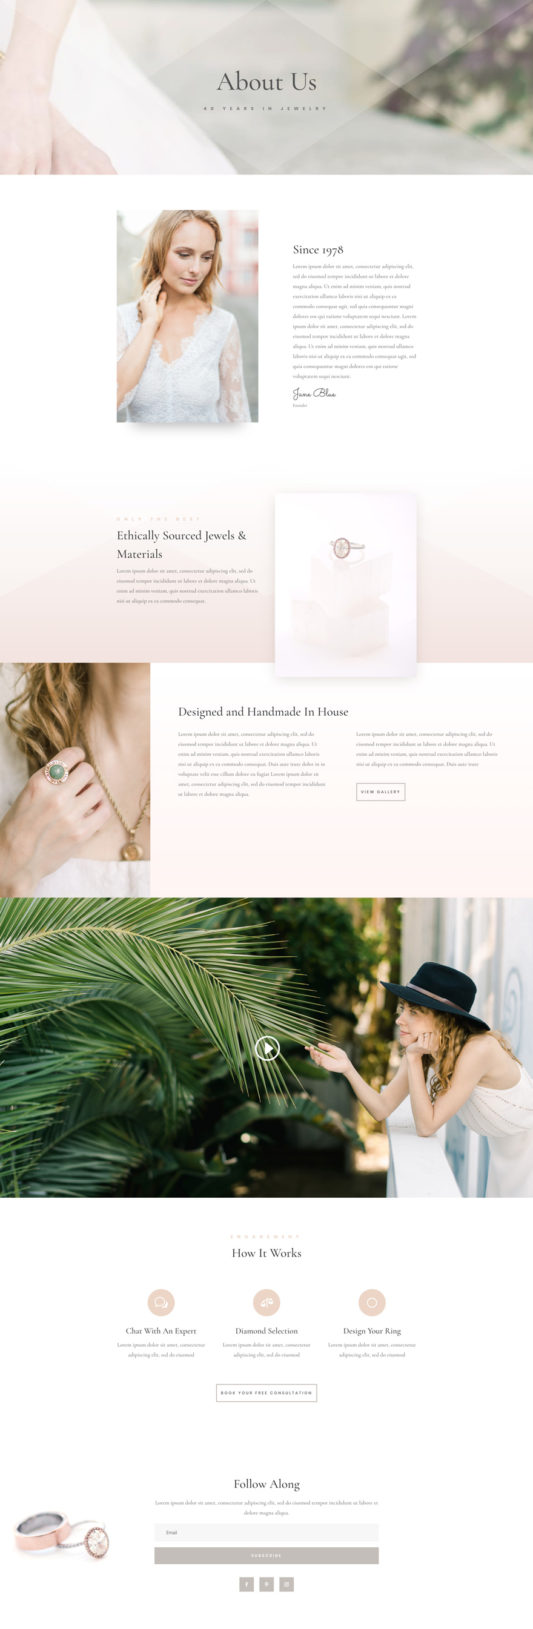 Jeweler Web Design 1